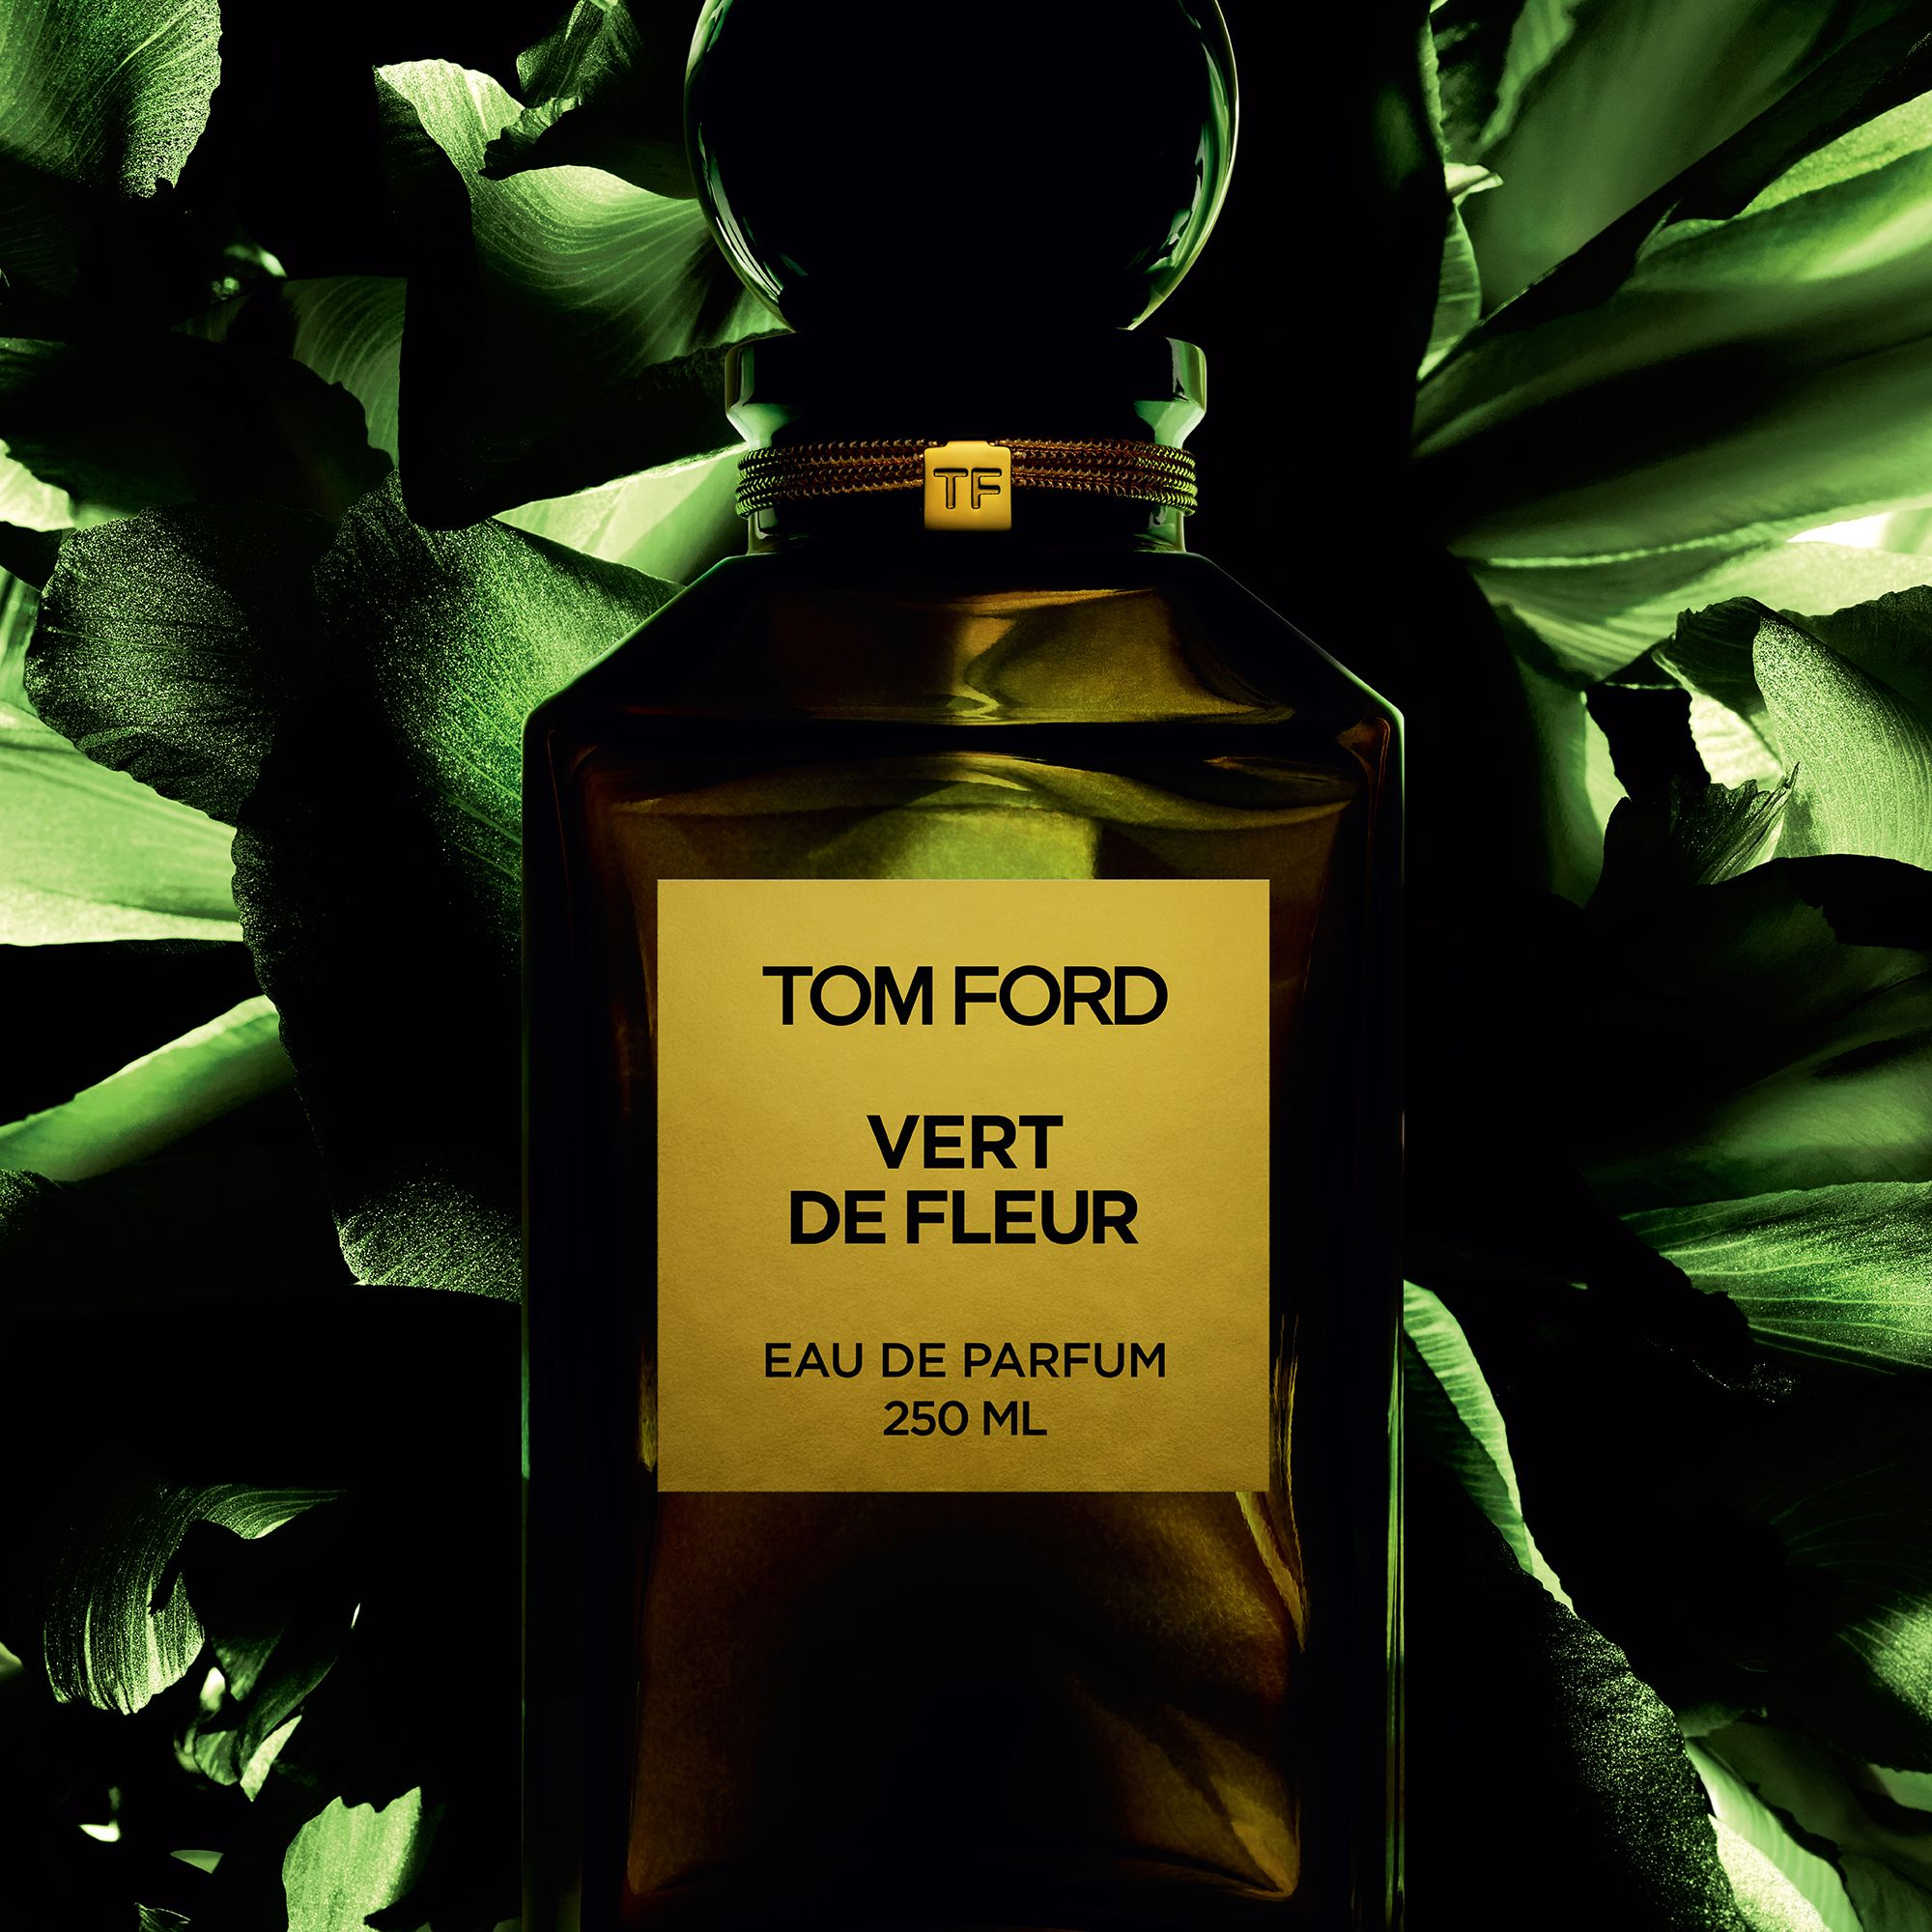 Gift Her The Groundbreaking Florals From The Tom Ford Private